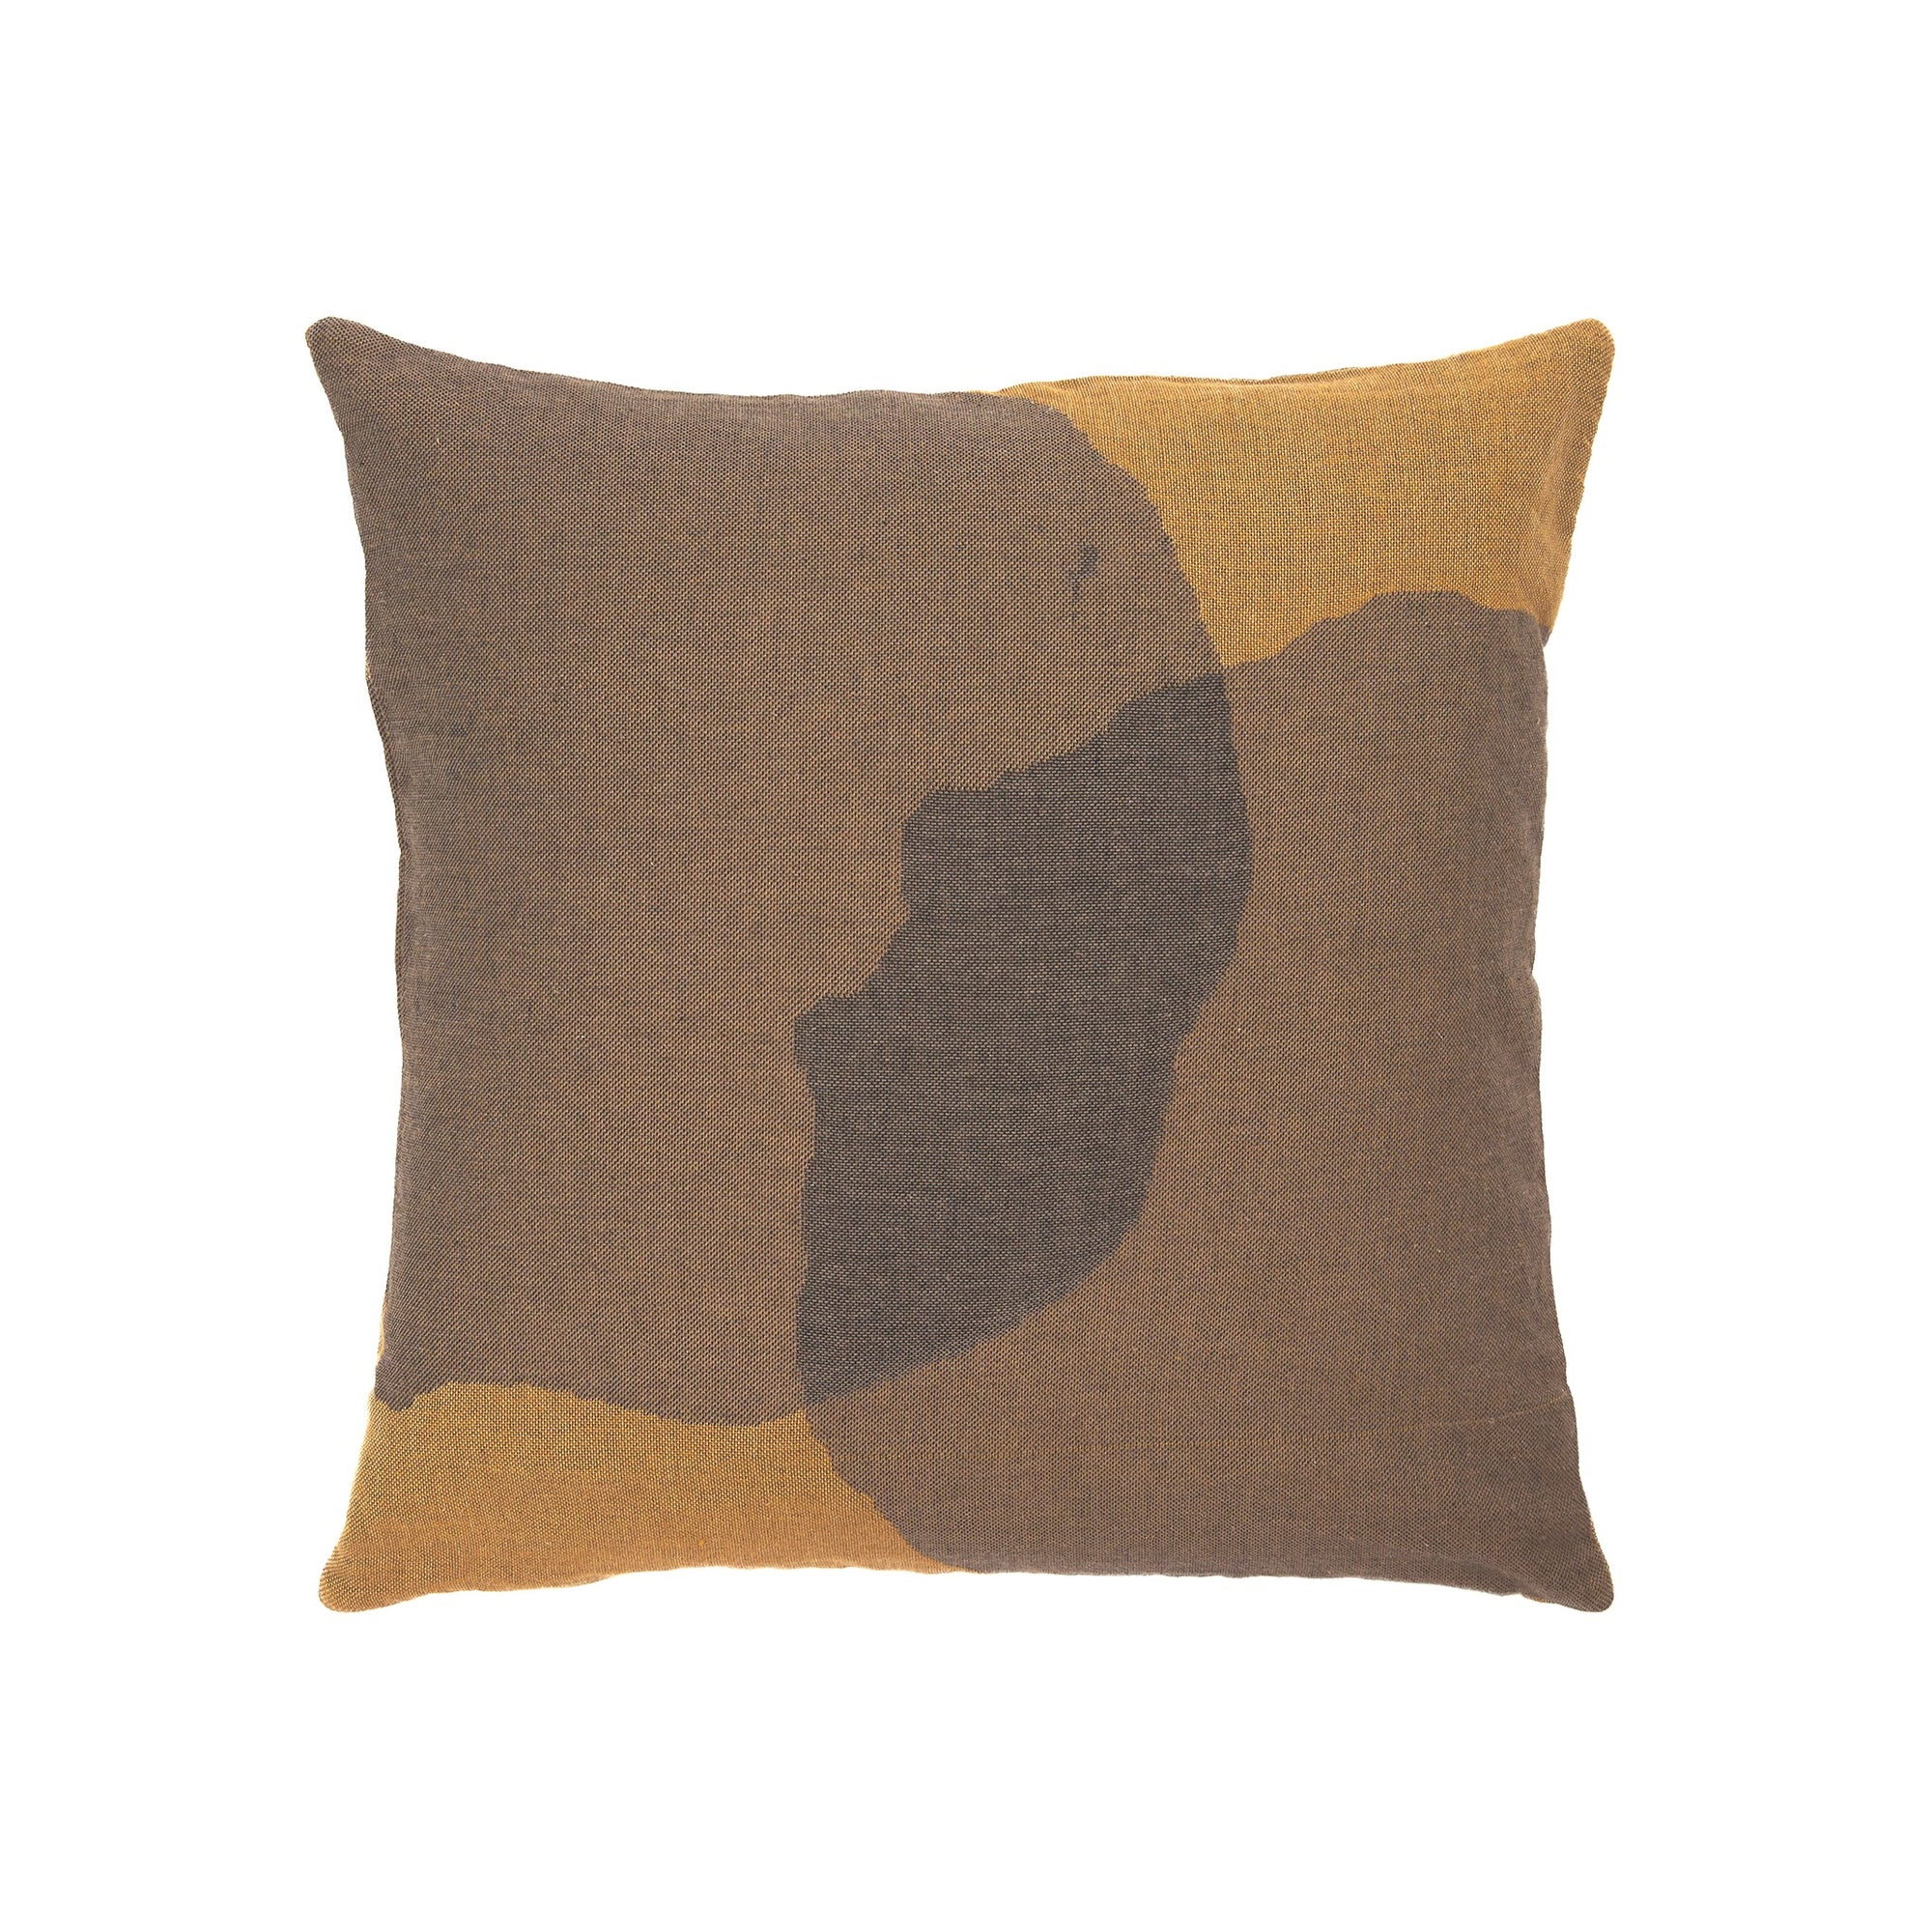 Overlapping Dots cushion